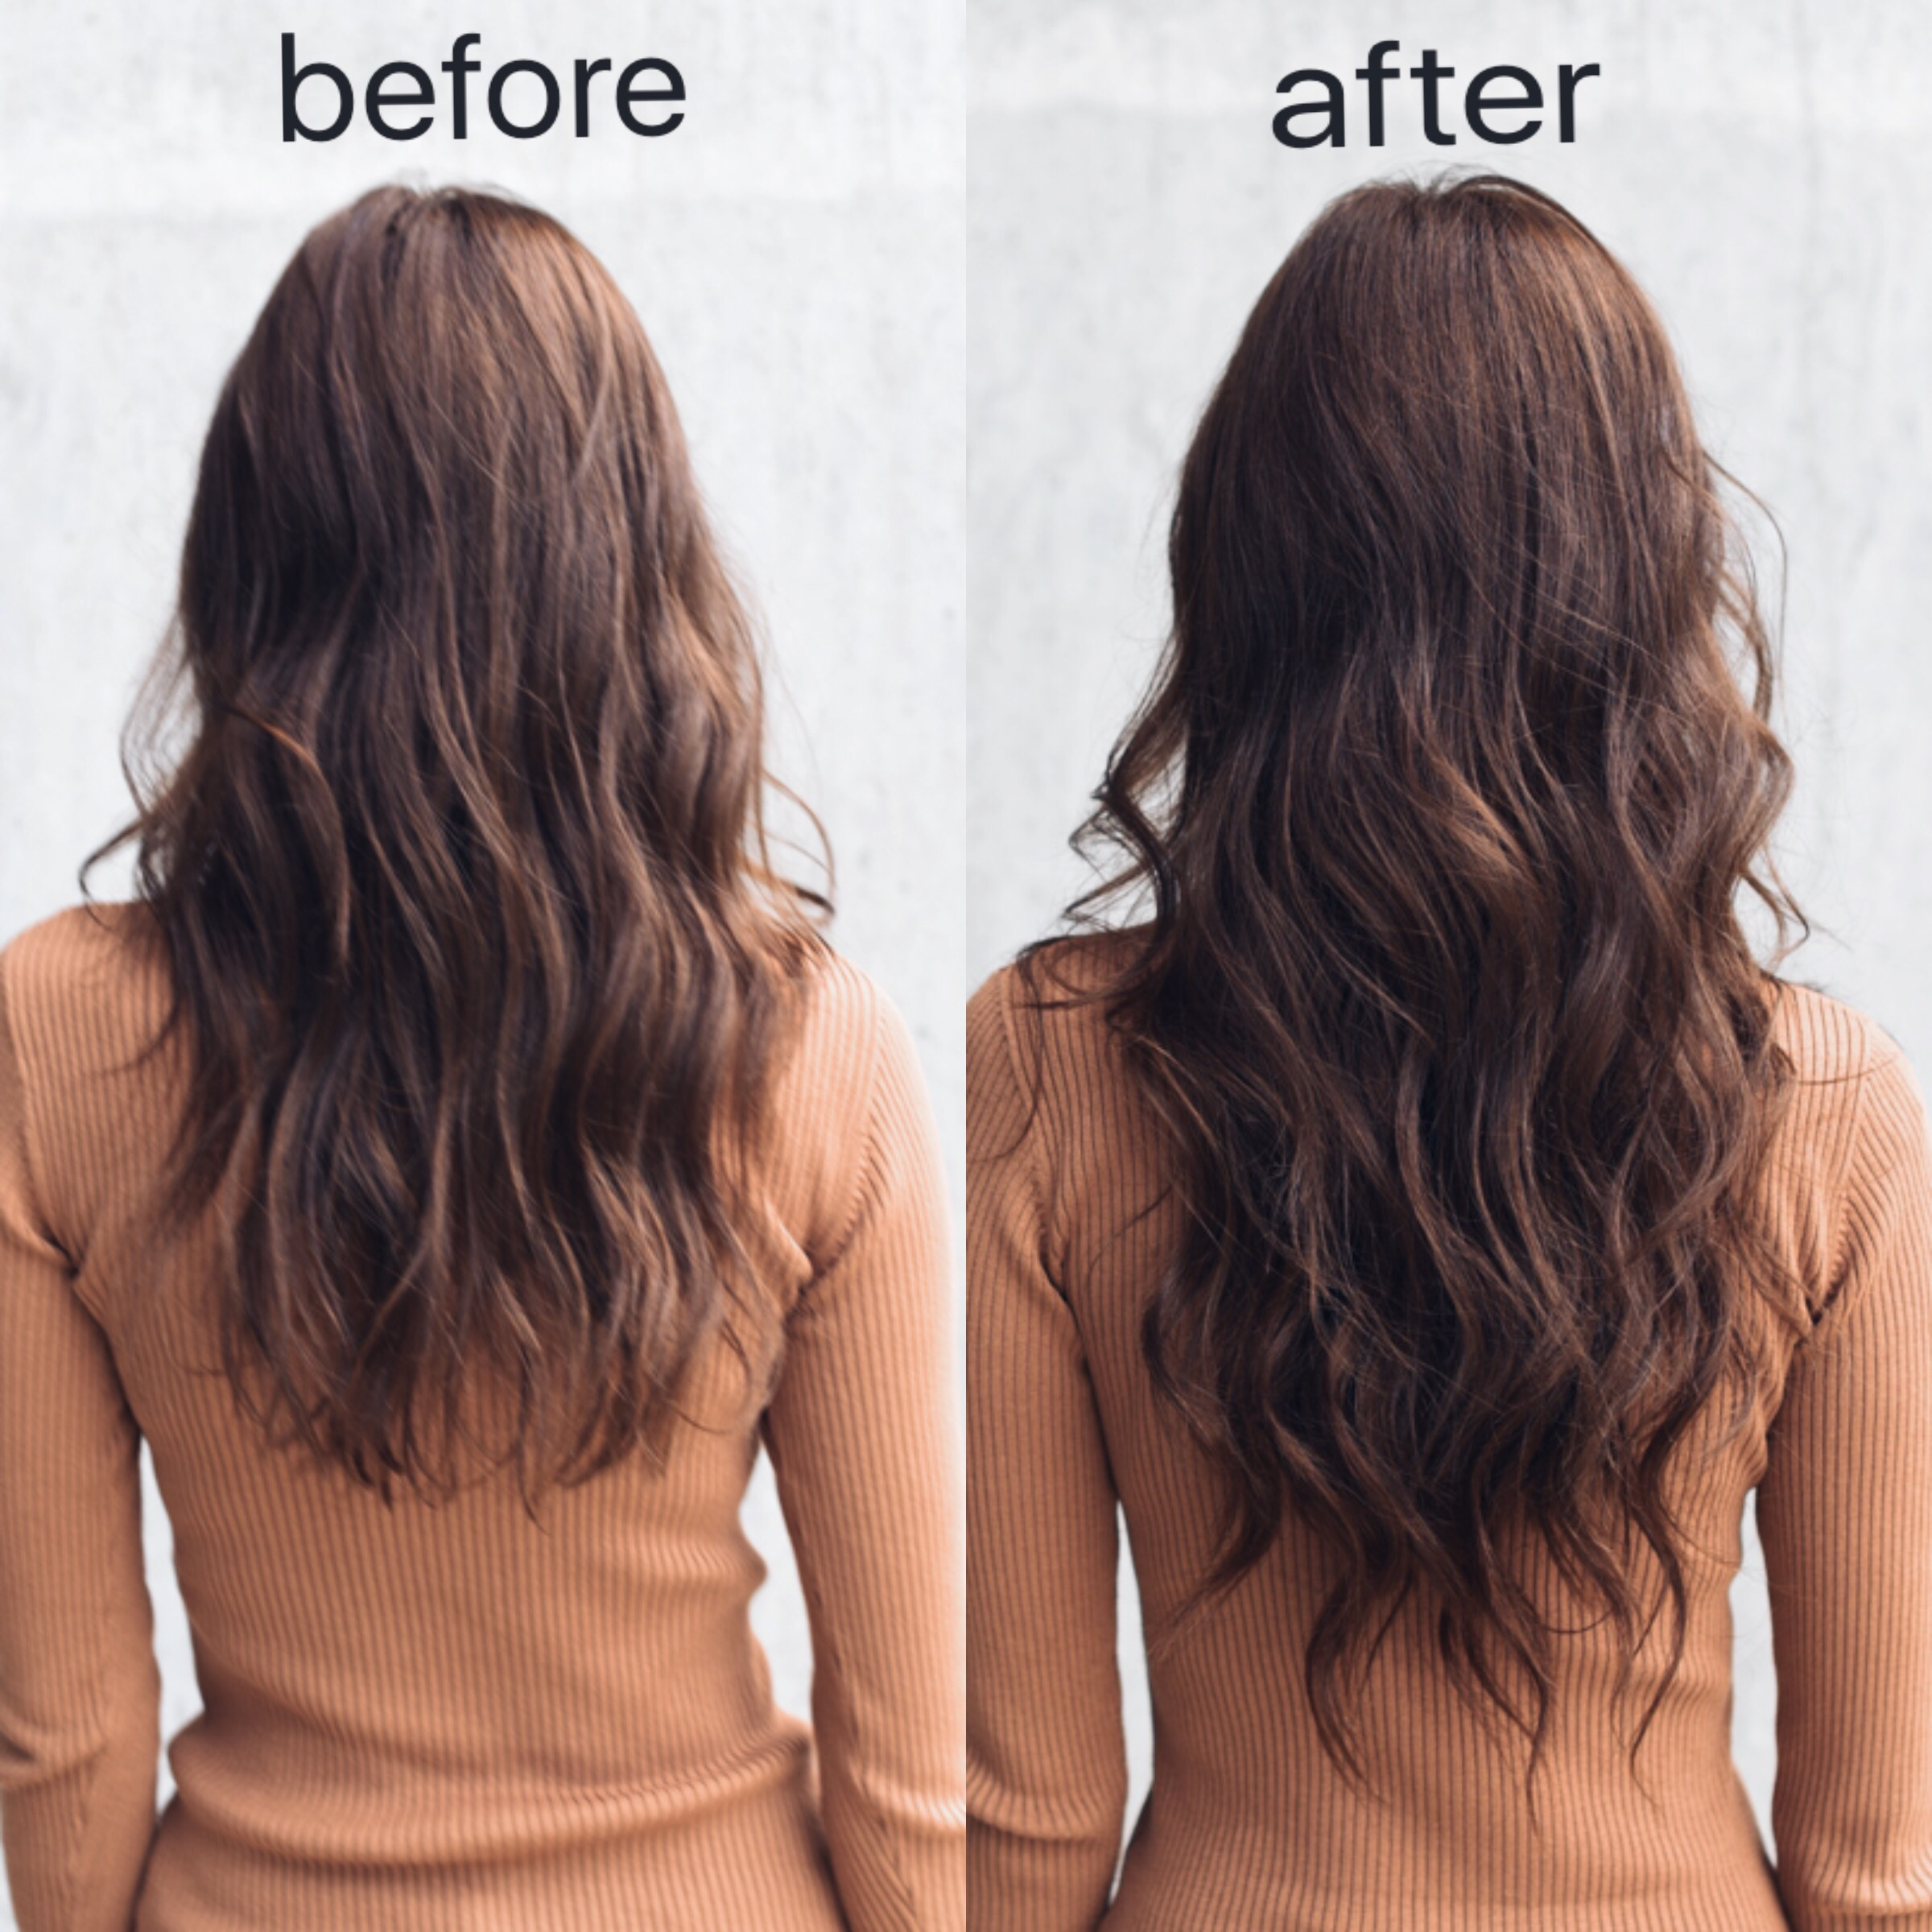 Clip-In Hair Extension Tips. Before and After